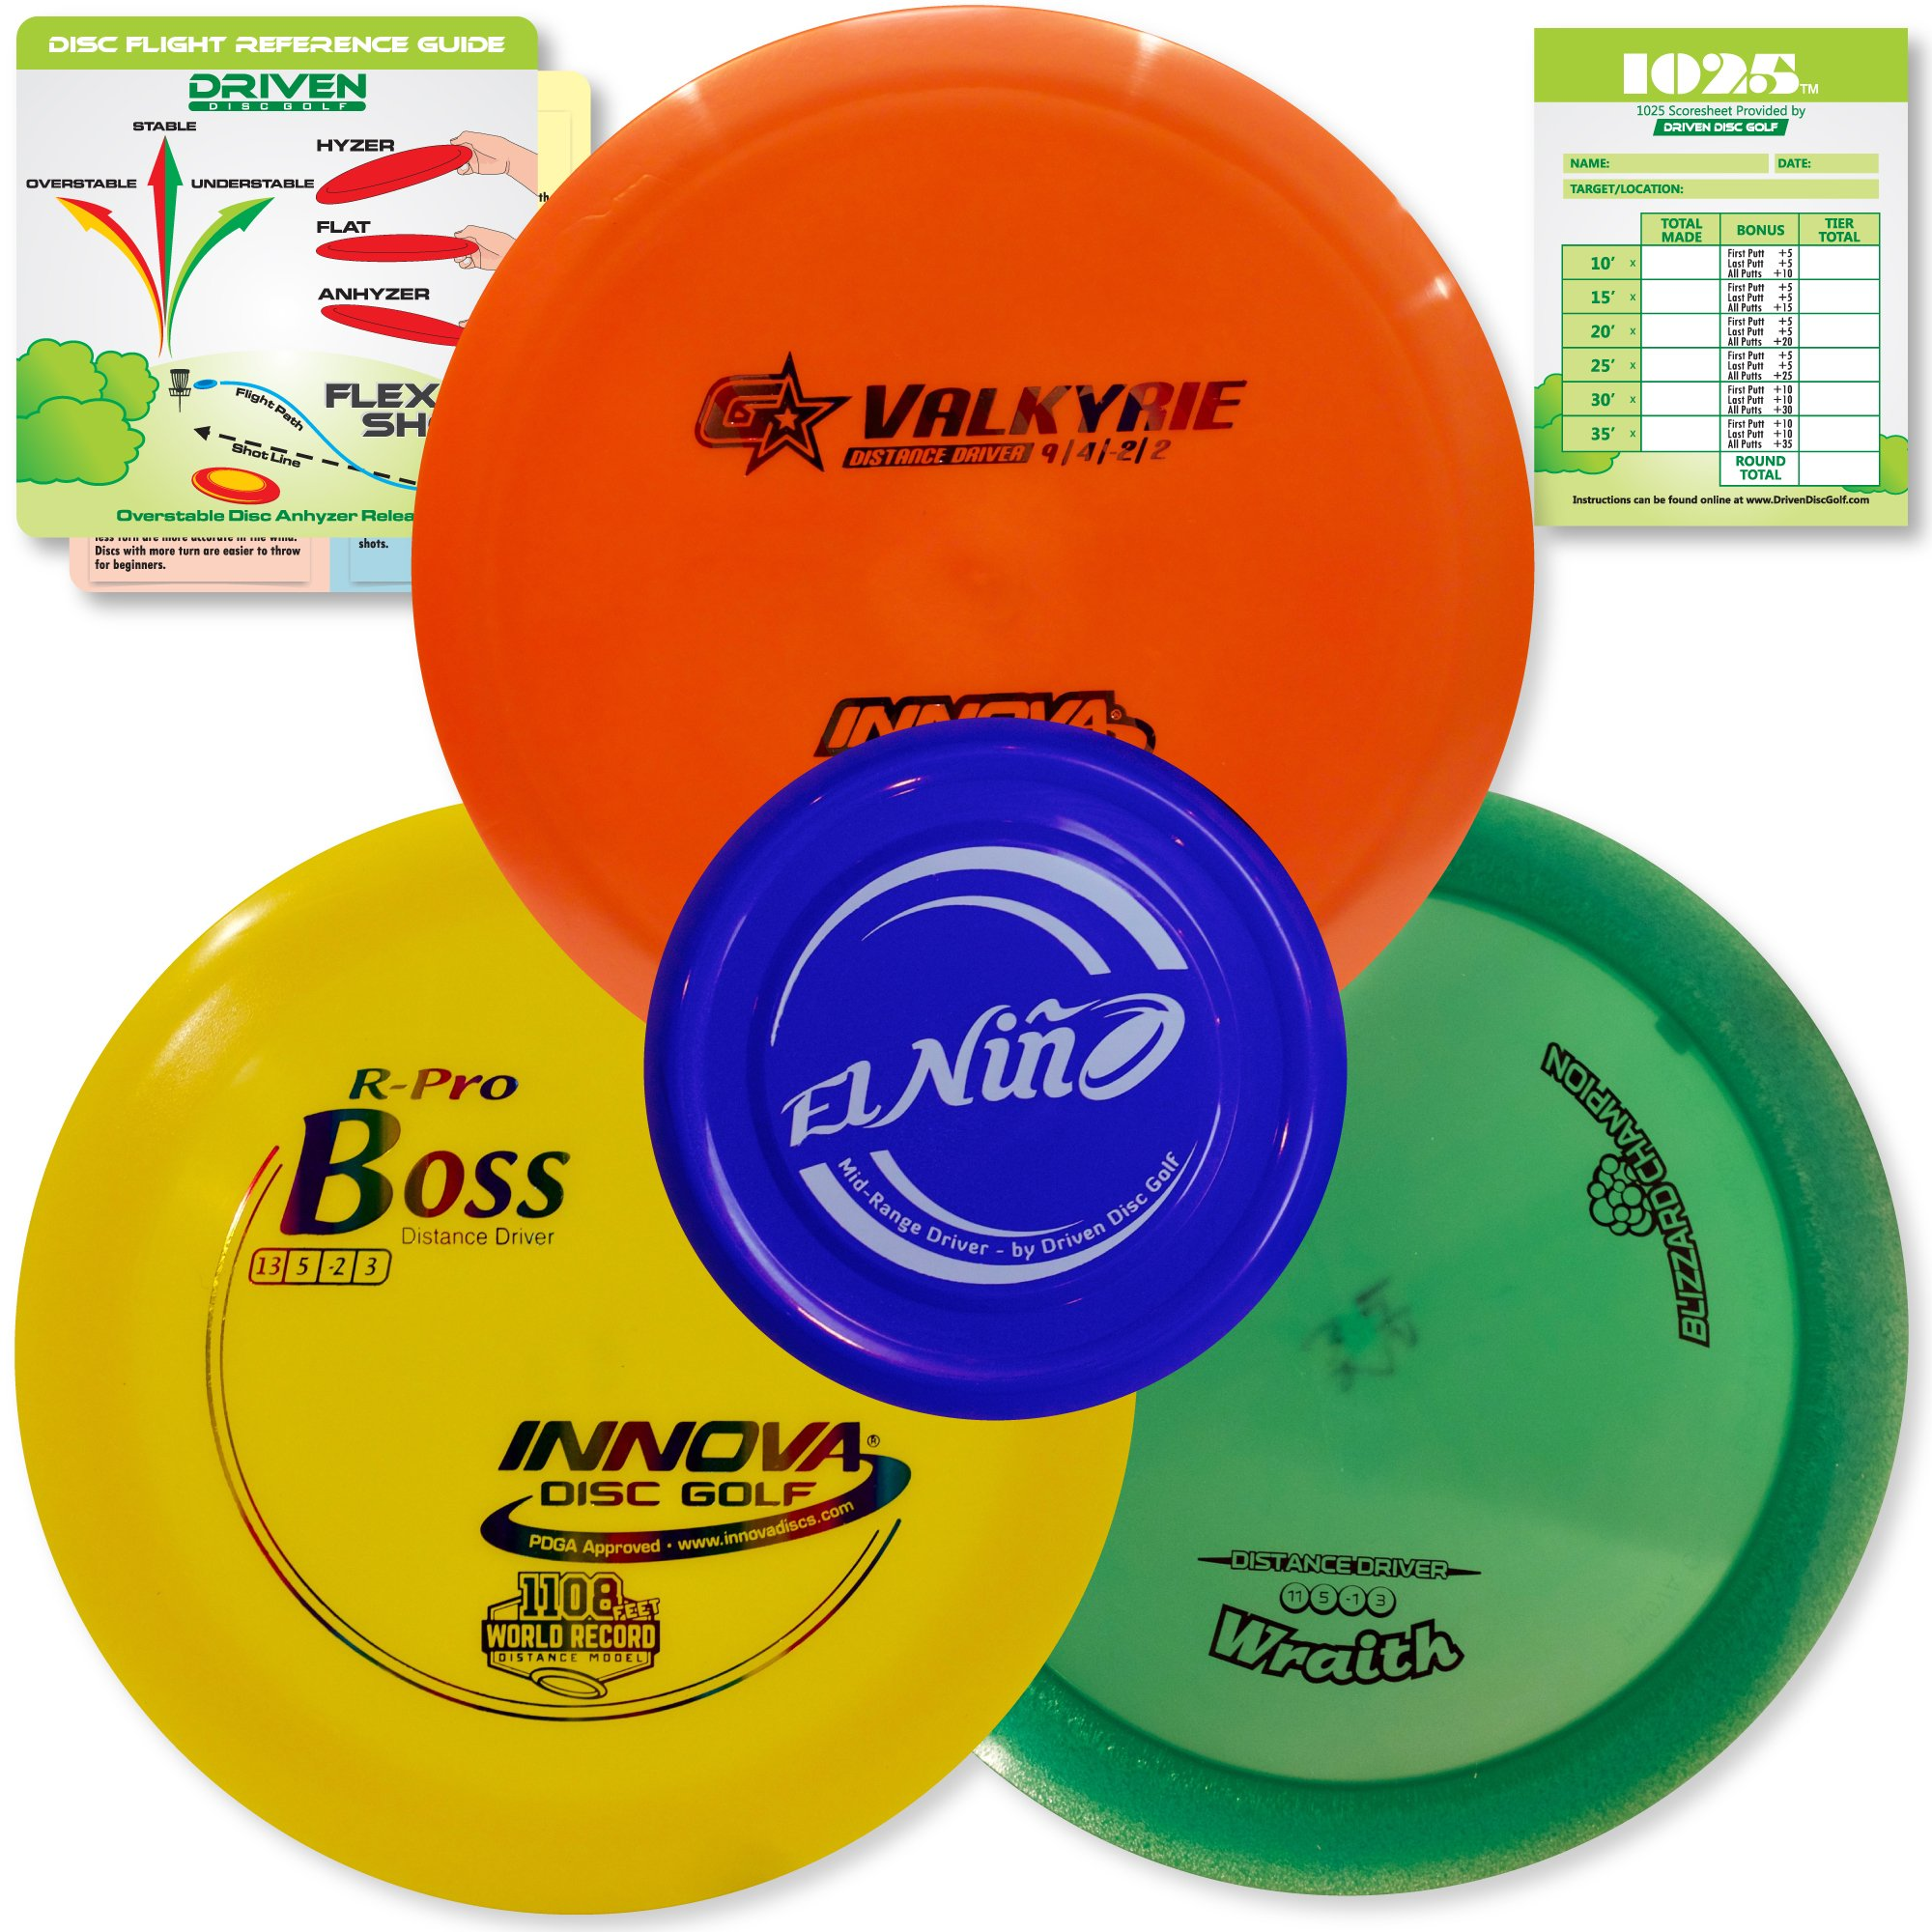 Innova Disc Golf Championship Set | 3 World Record Breaking Discs in PREMIUM Plastics - Includes 1025 Putting Game - Flight Reference Card - Driven Mini Marker | Disc Colors Vary by Driven Disc Golf